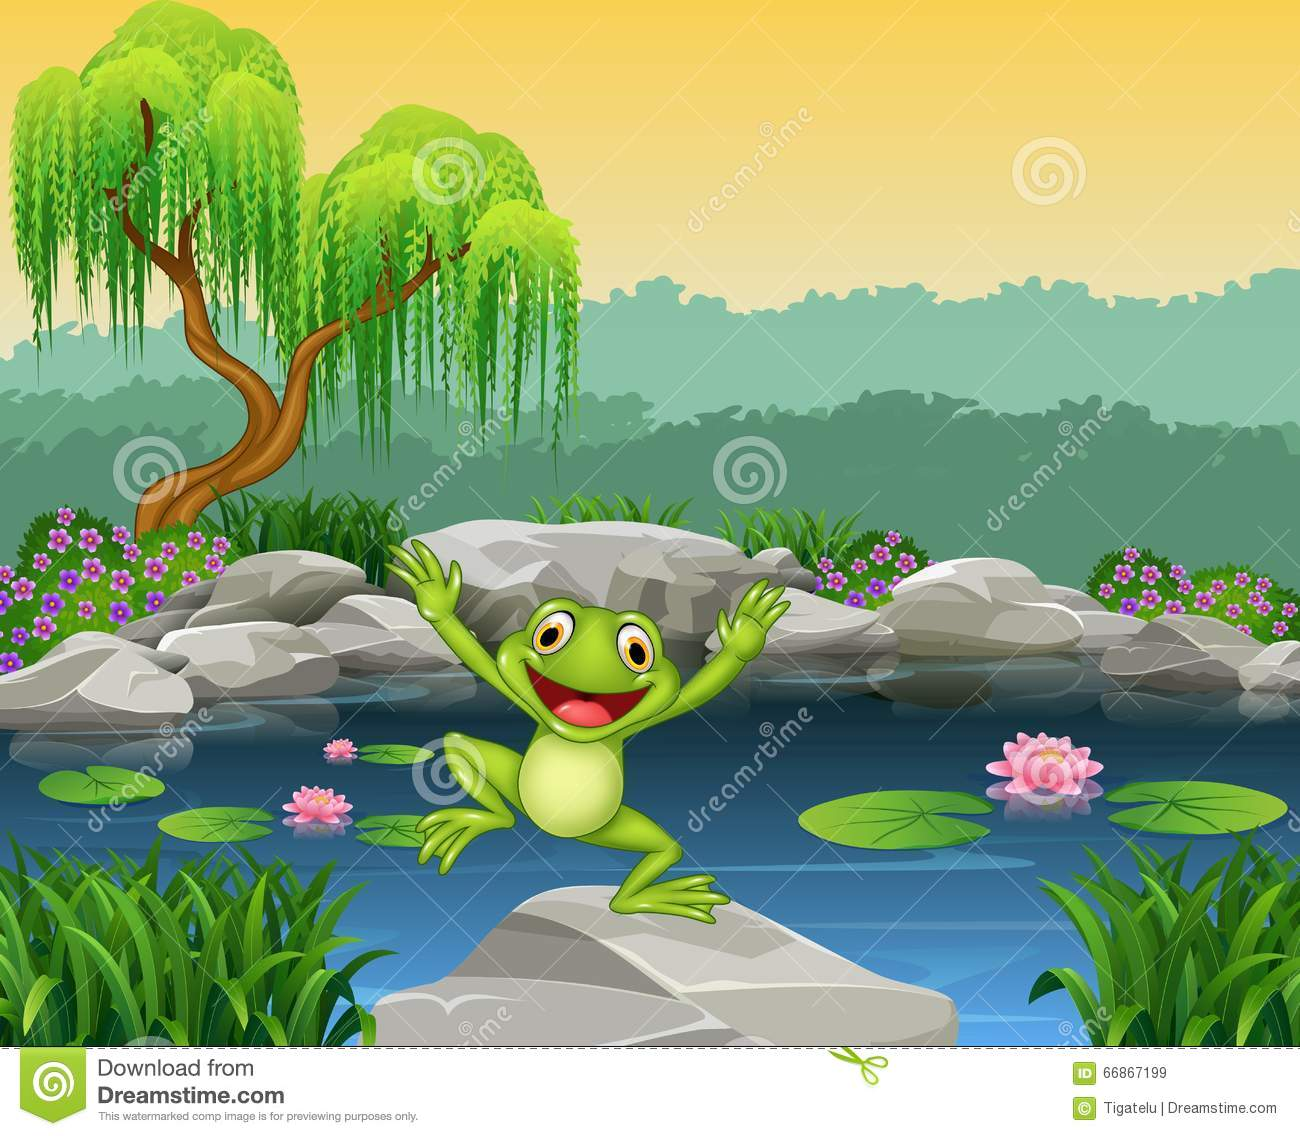 The jumping young frog cartoon vector illustration